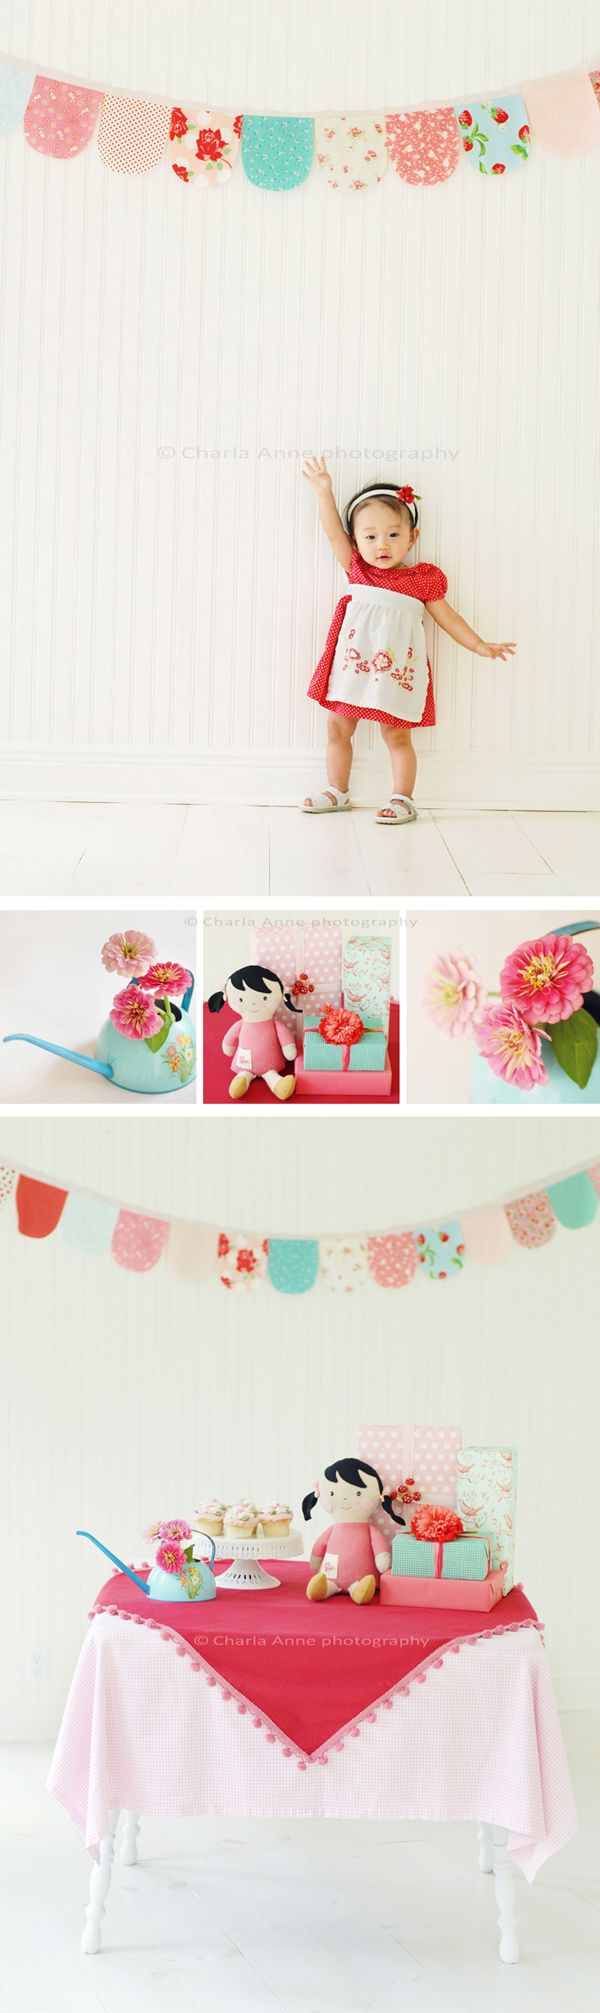 Great for party decorations! **Easy tablecloth too :) I'm seeing my little girl's birthday party already....